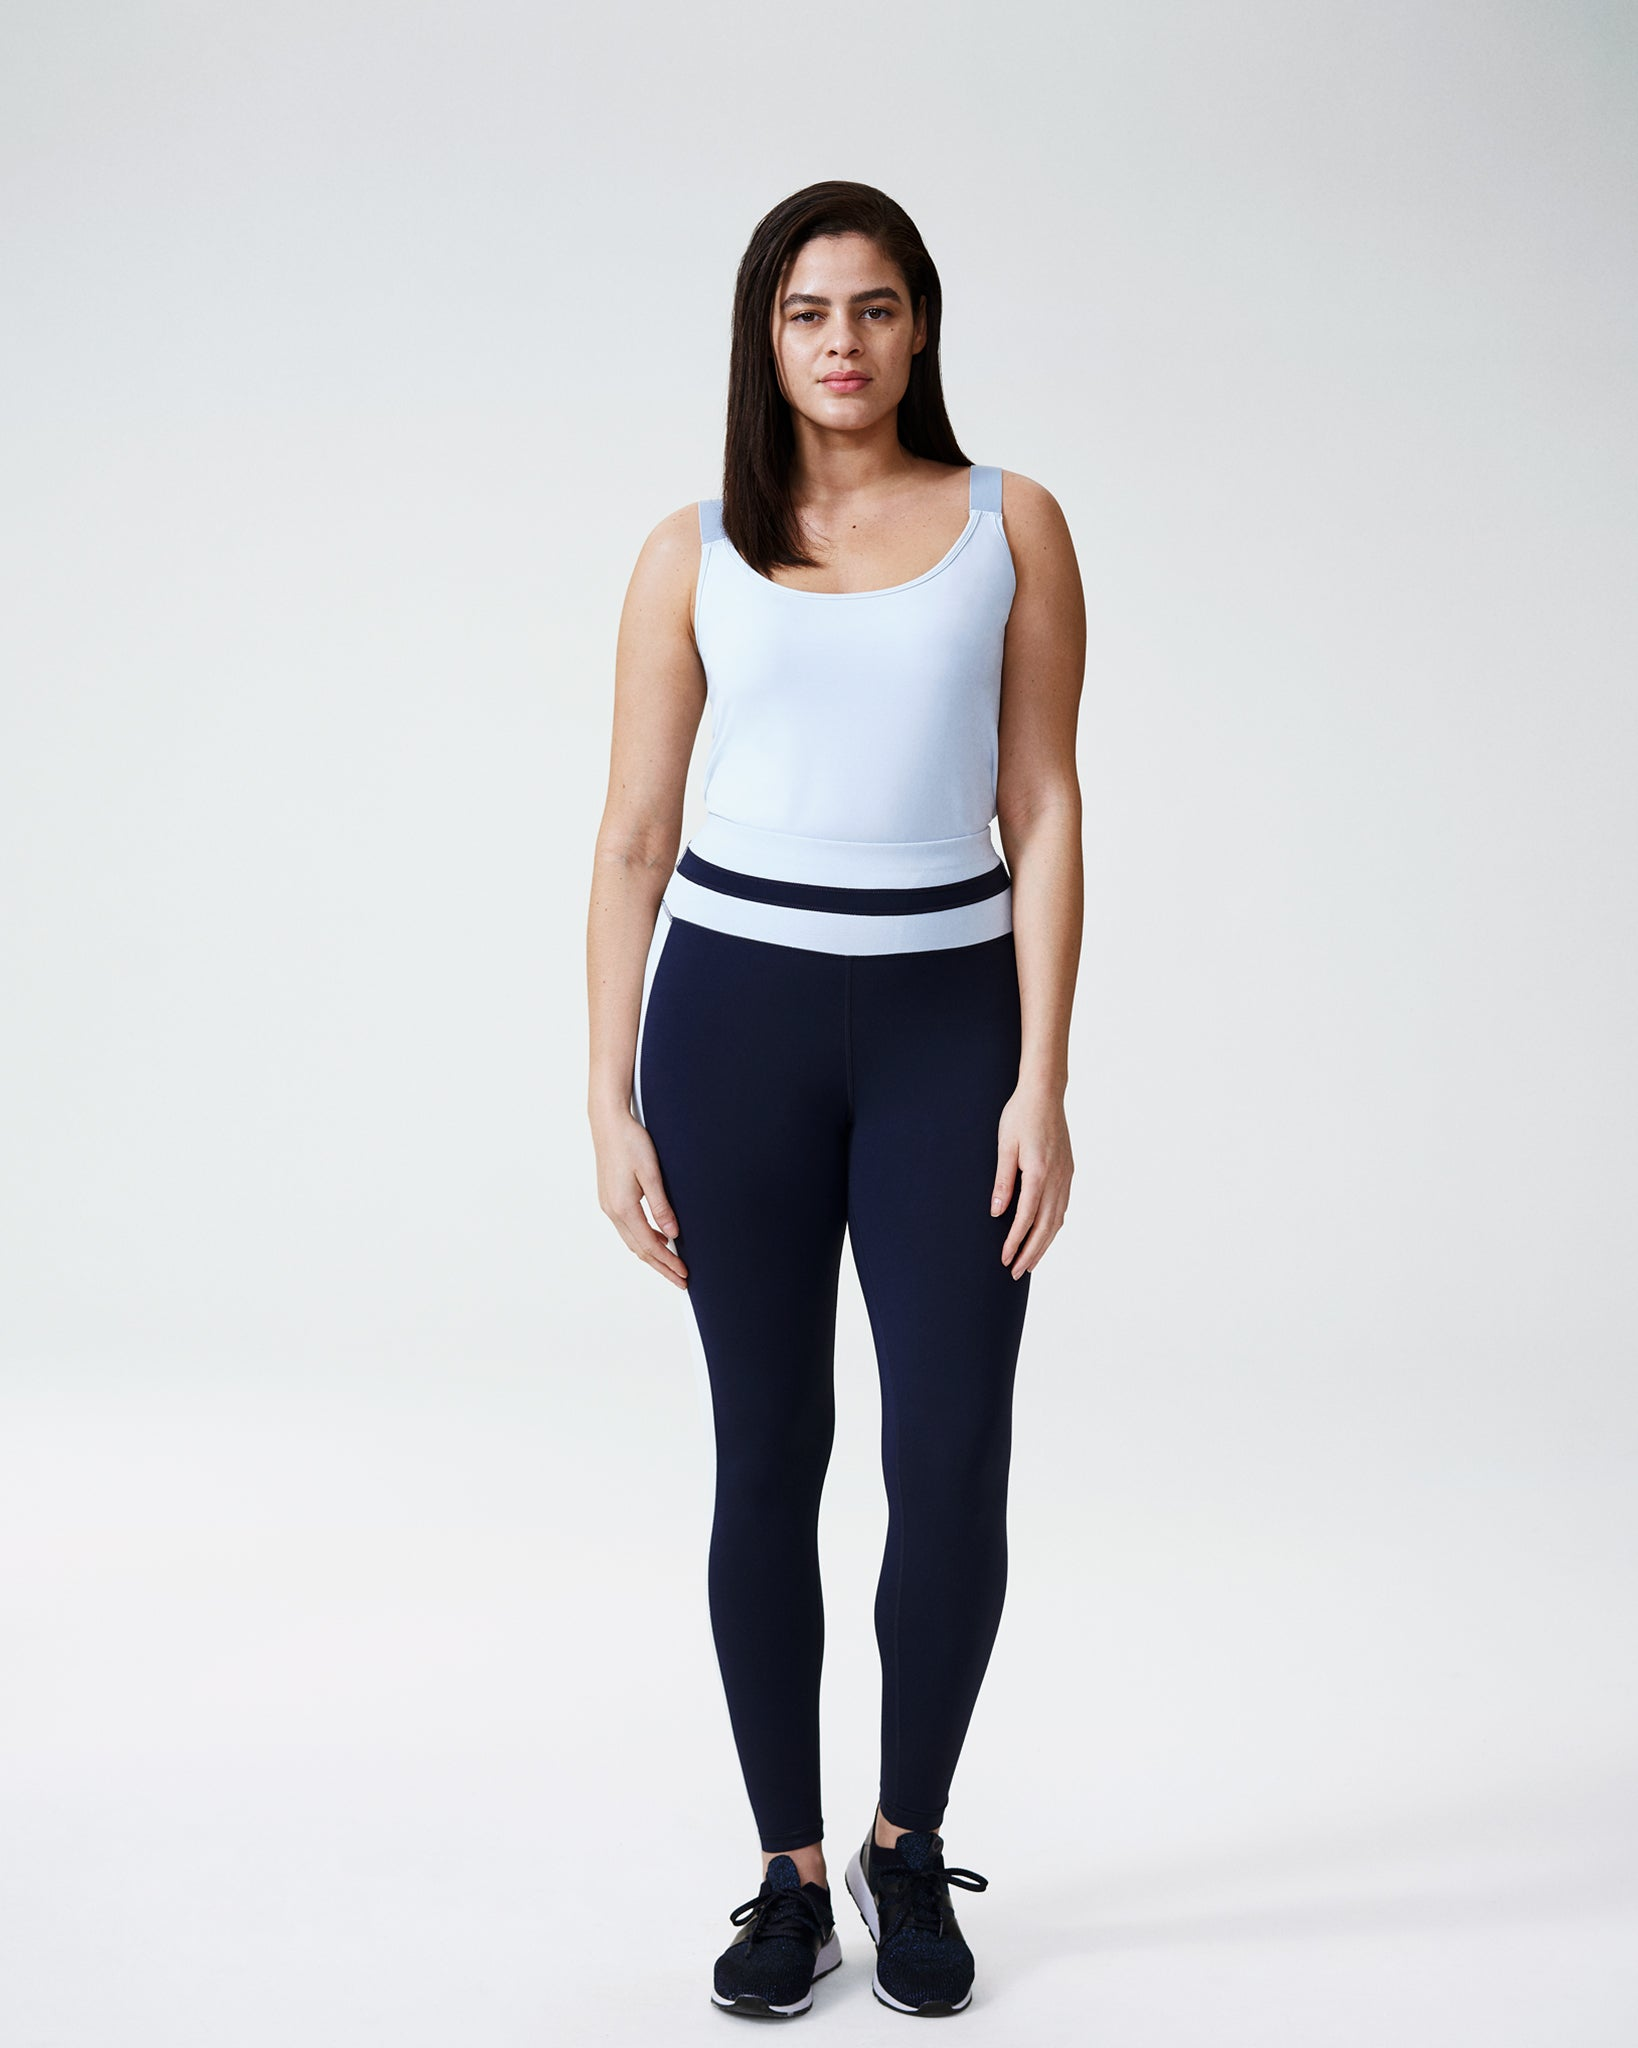 Ace Contrast Panel 7/8 Leggings - Navy/Powder Blue